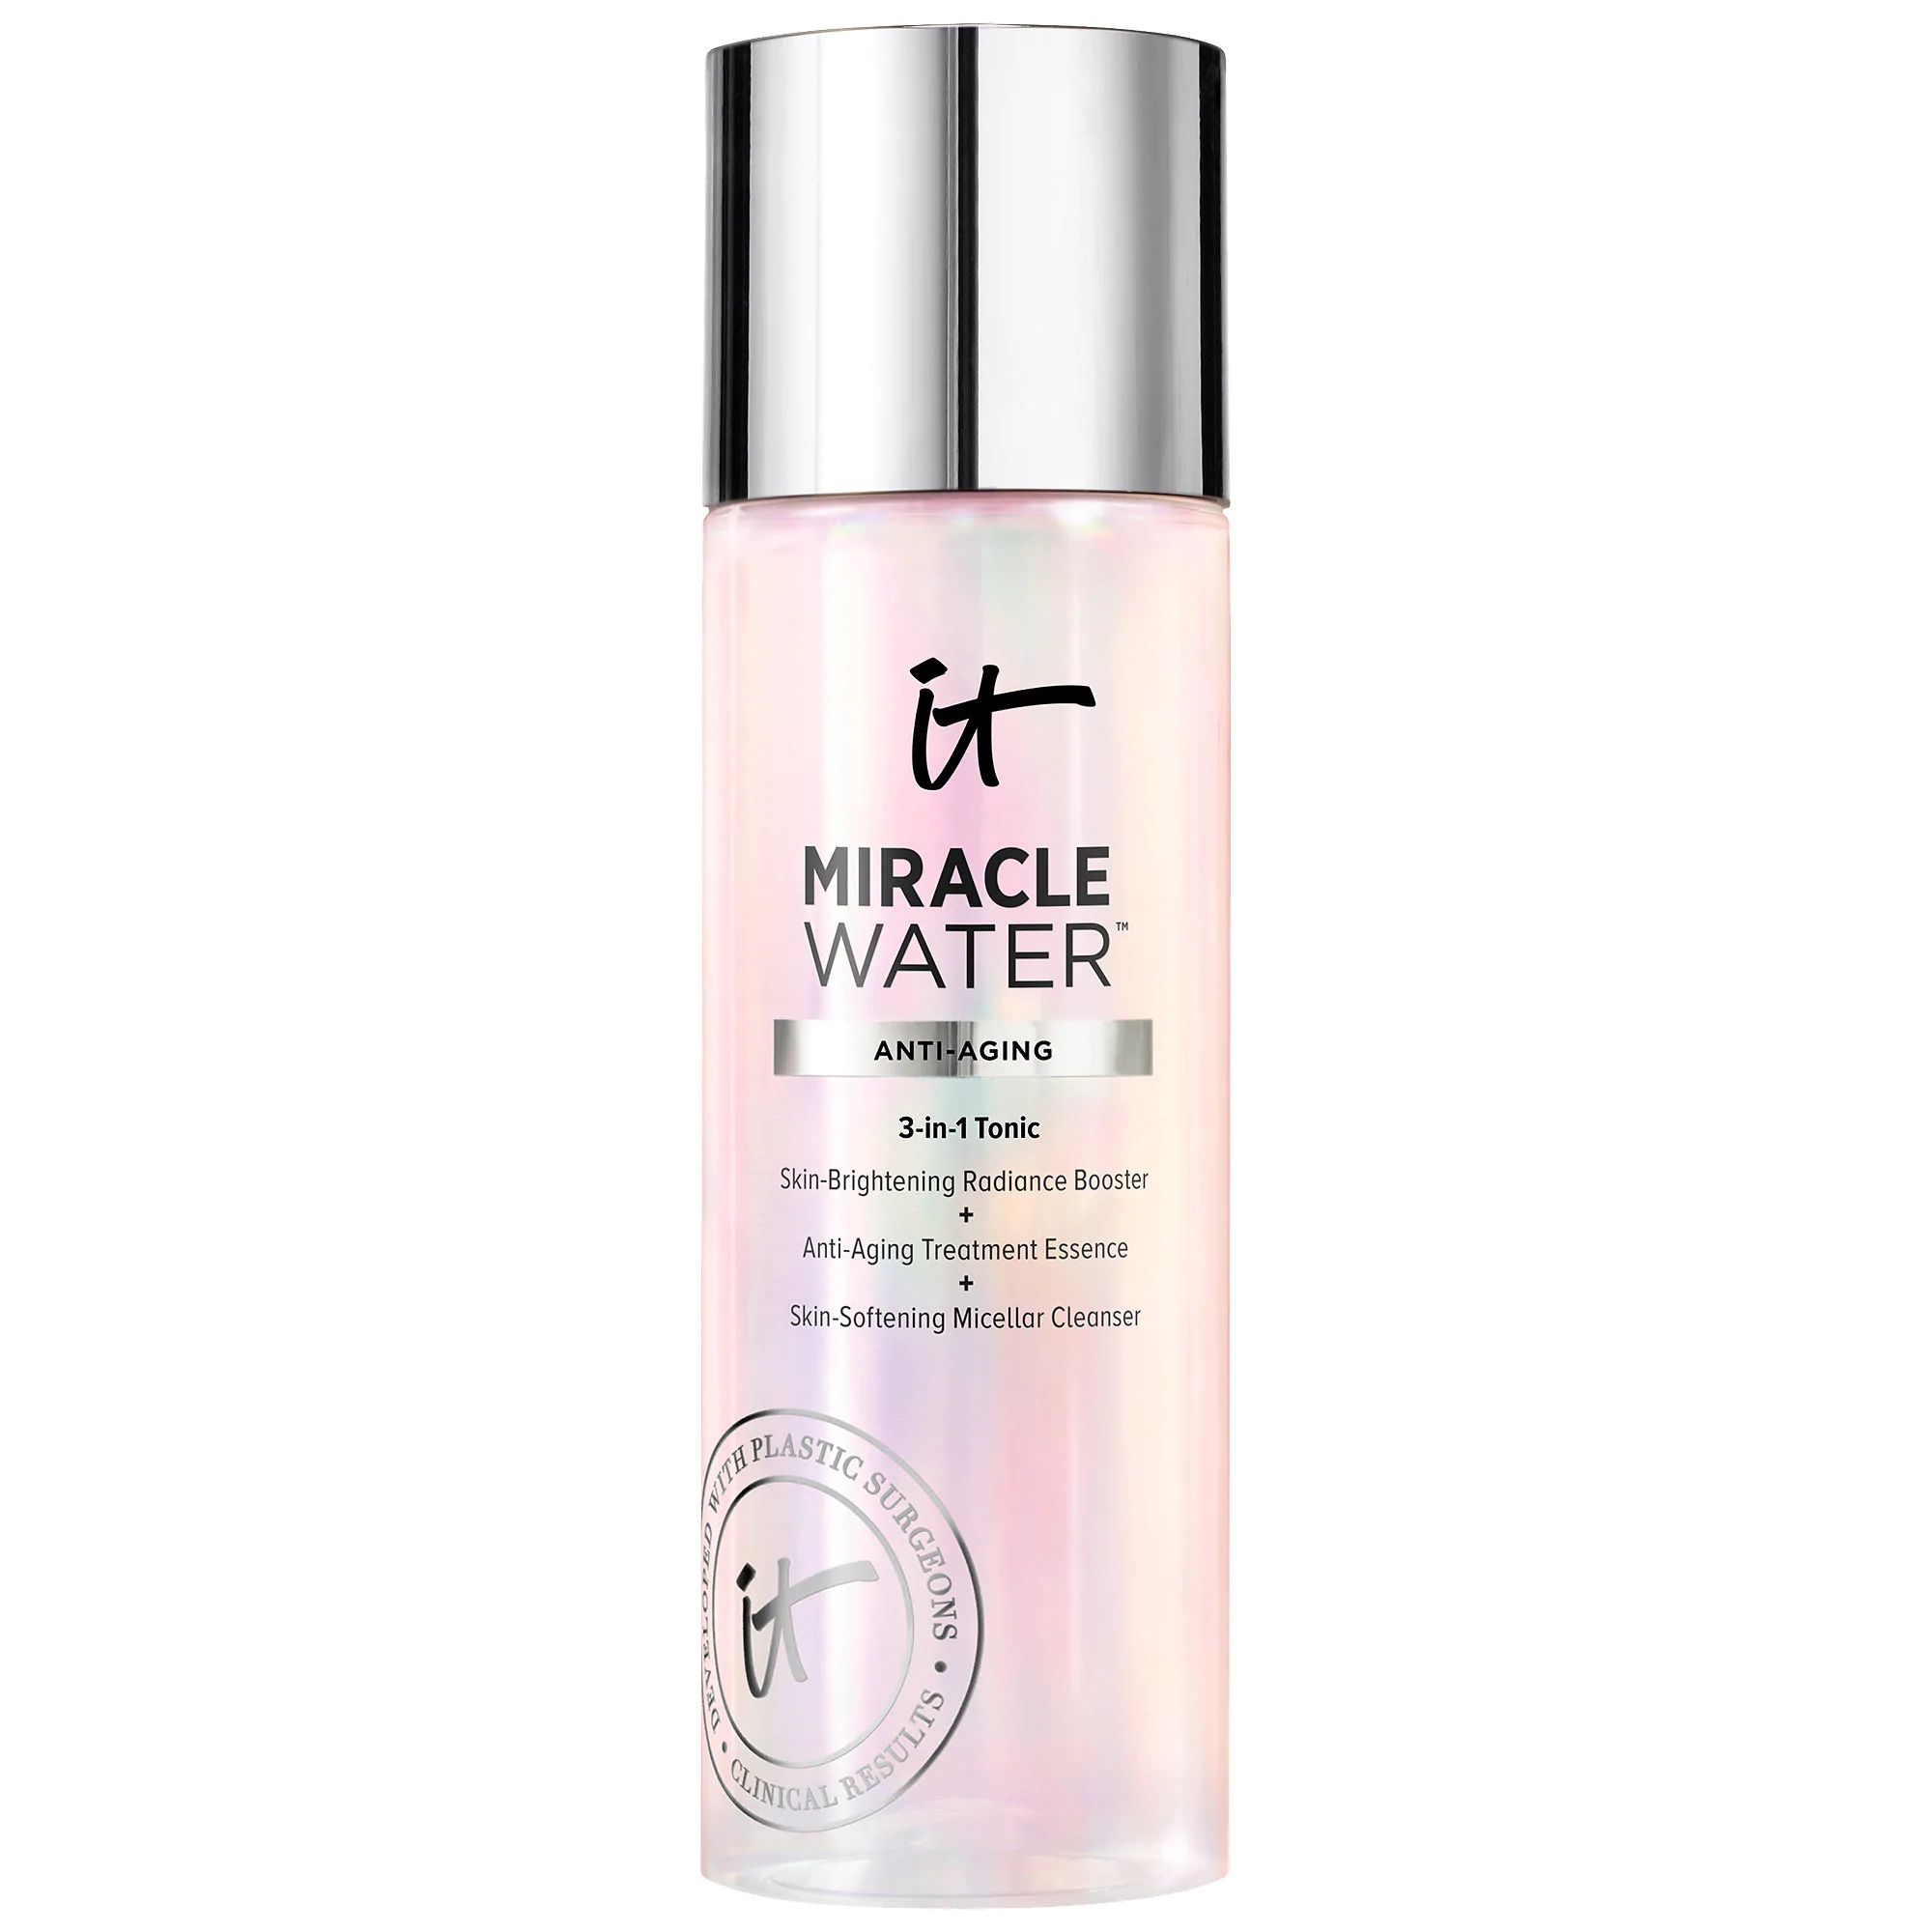 IT Cosmetics-Miracle Water Micellar Cleanser